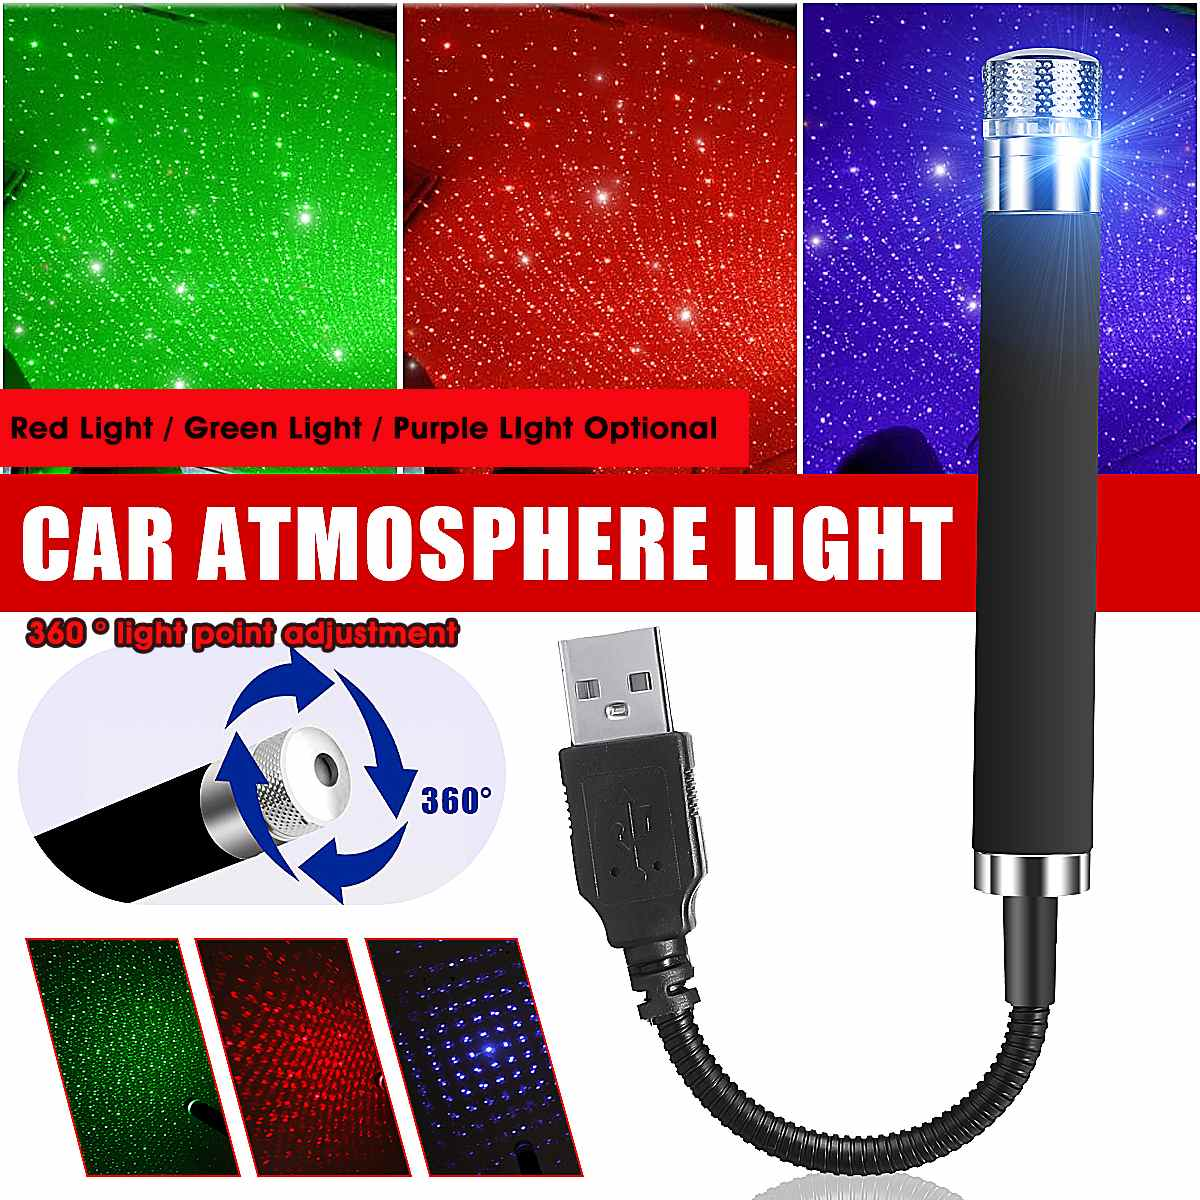 Universal USB Car Decorative Light Lamp Night Star Interior Roof Starry Lamp Atmosphere Projector Lights For Car Home